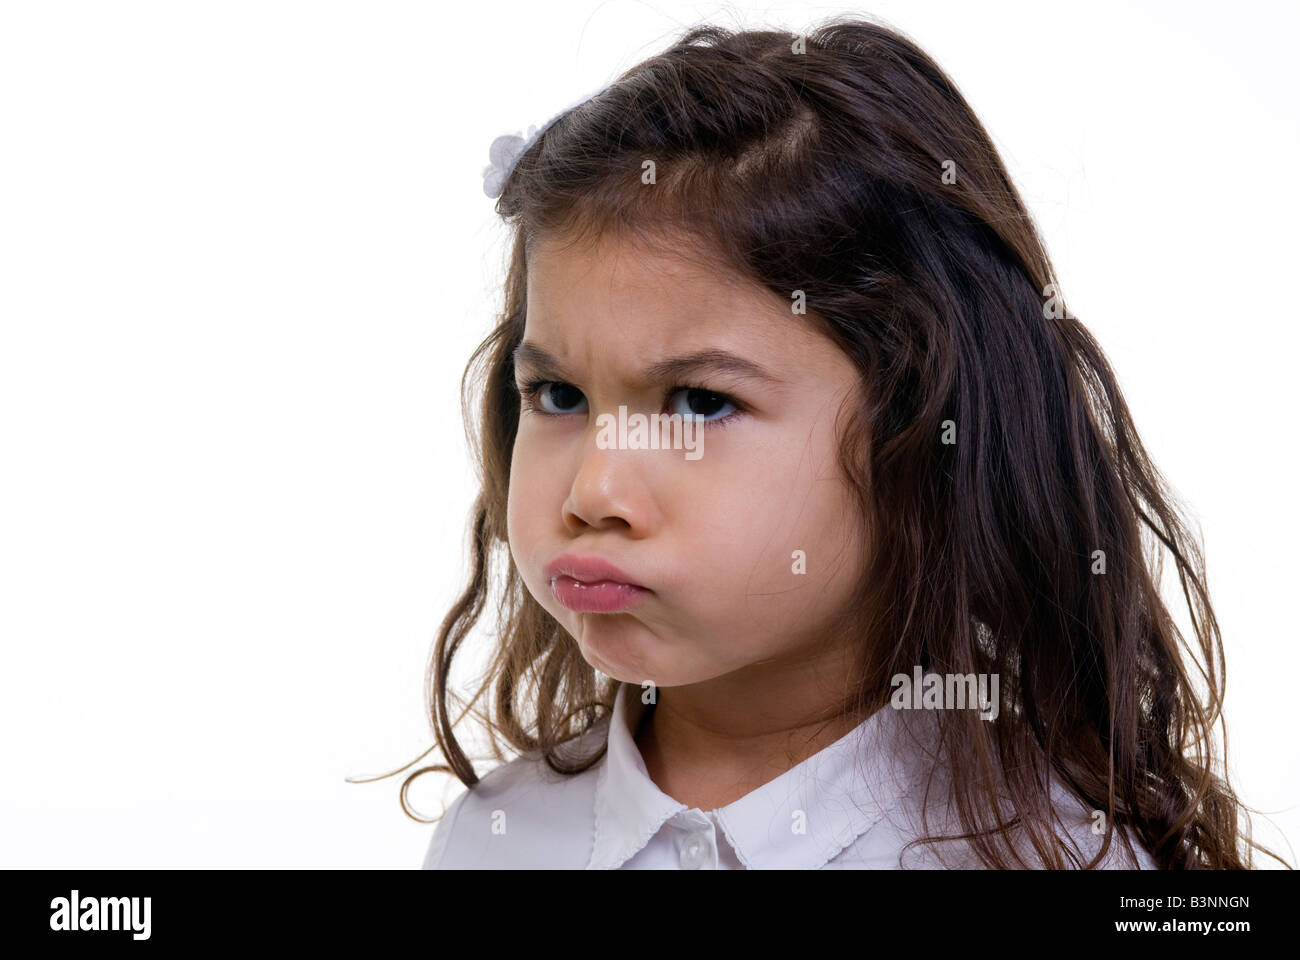 A young girl is pouting about something - Stock Image